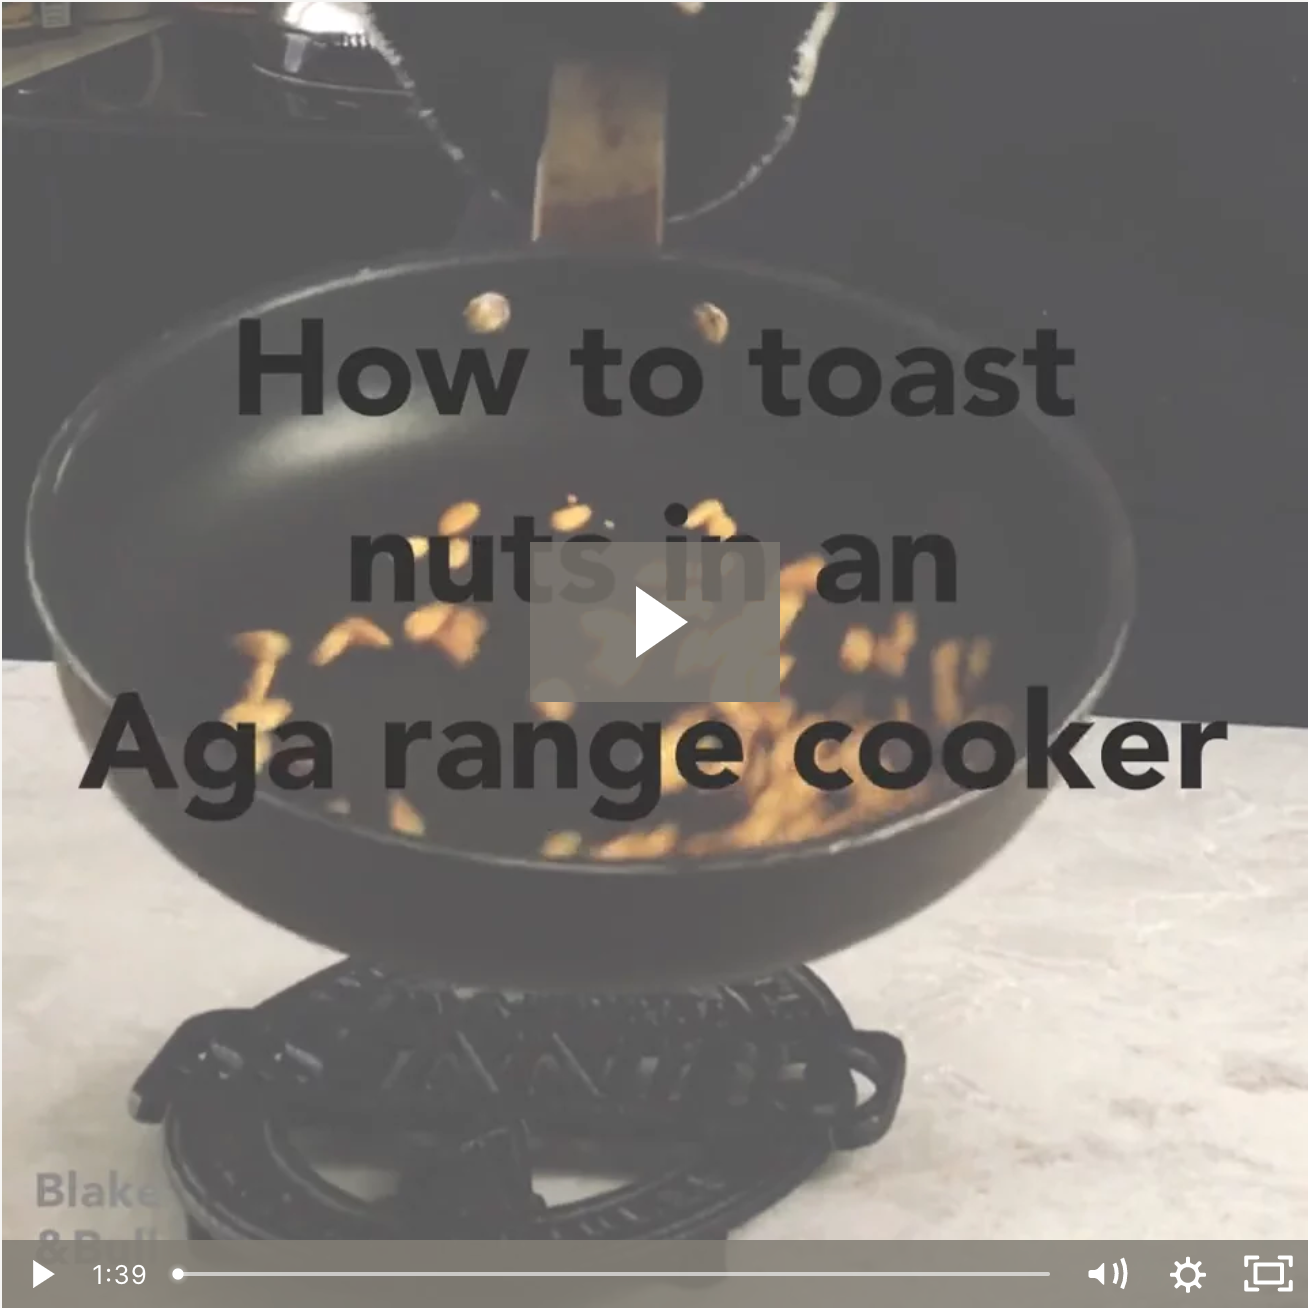 How to toast pine nuts with an Aga range cooker